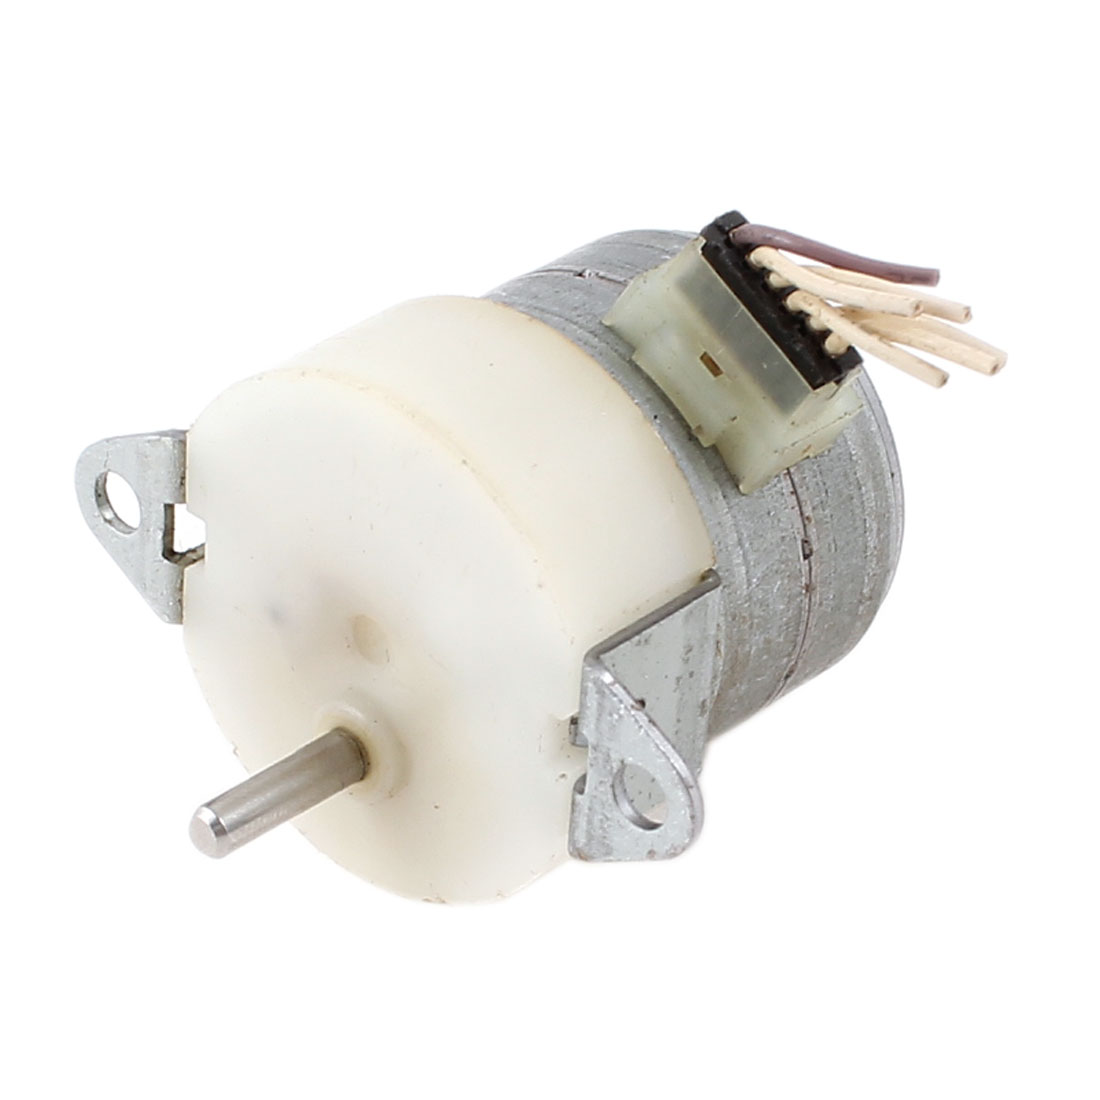 3mm Shaft 4500RPM Electric Stepper Stepping Motor Reduction Ratio 1:12